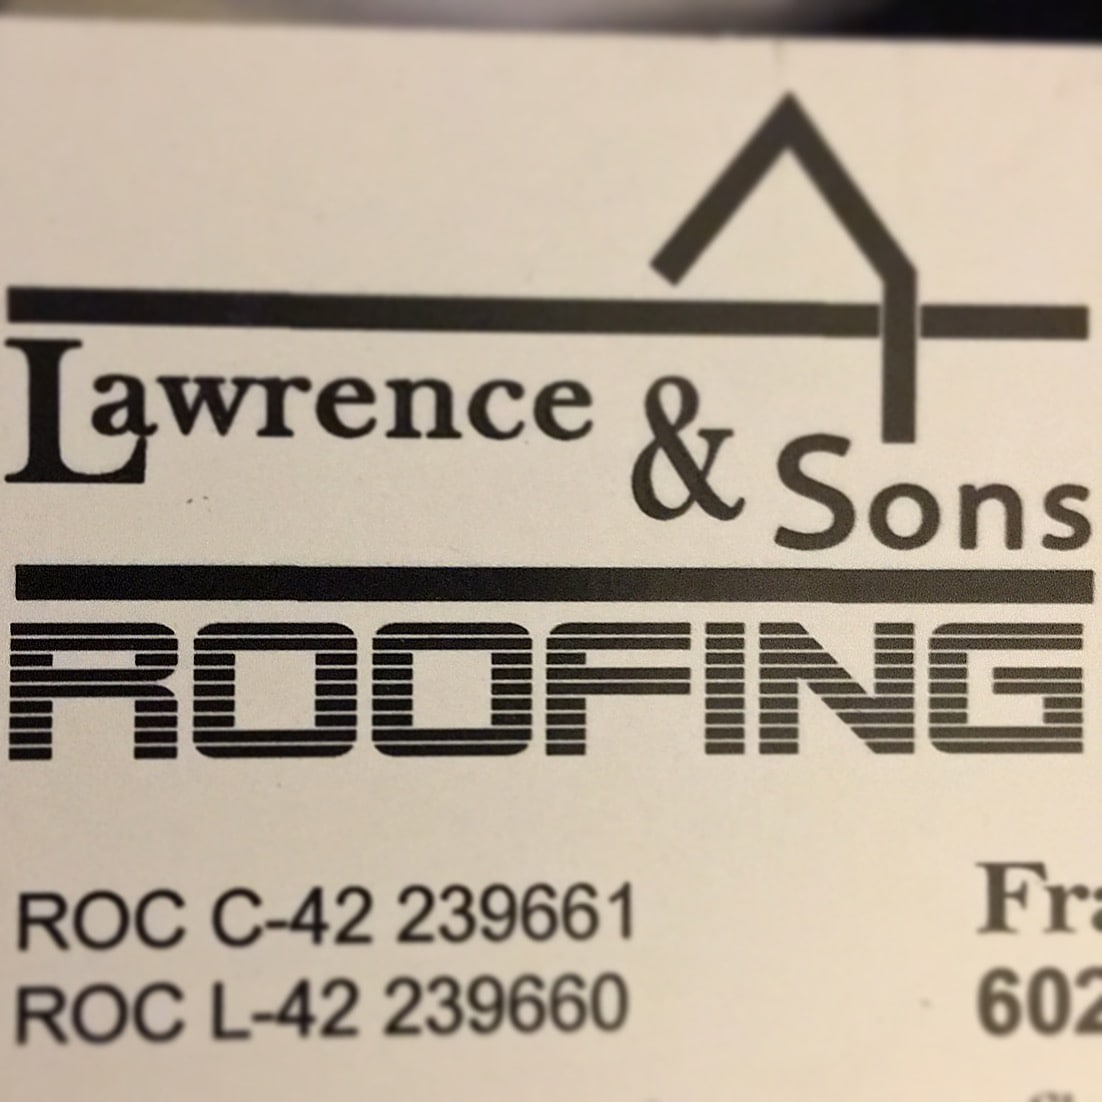 Lawrence & Sons Roofing Inc